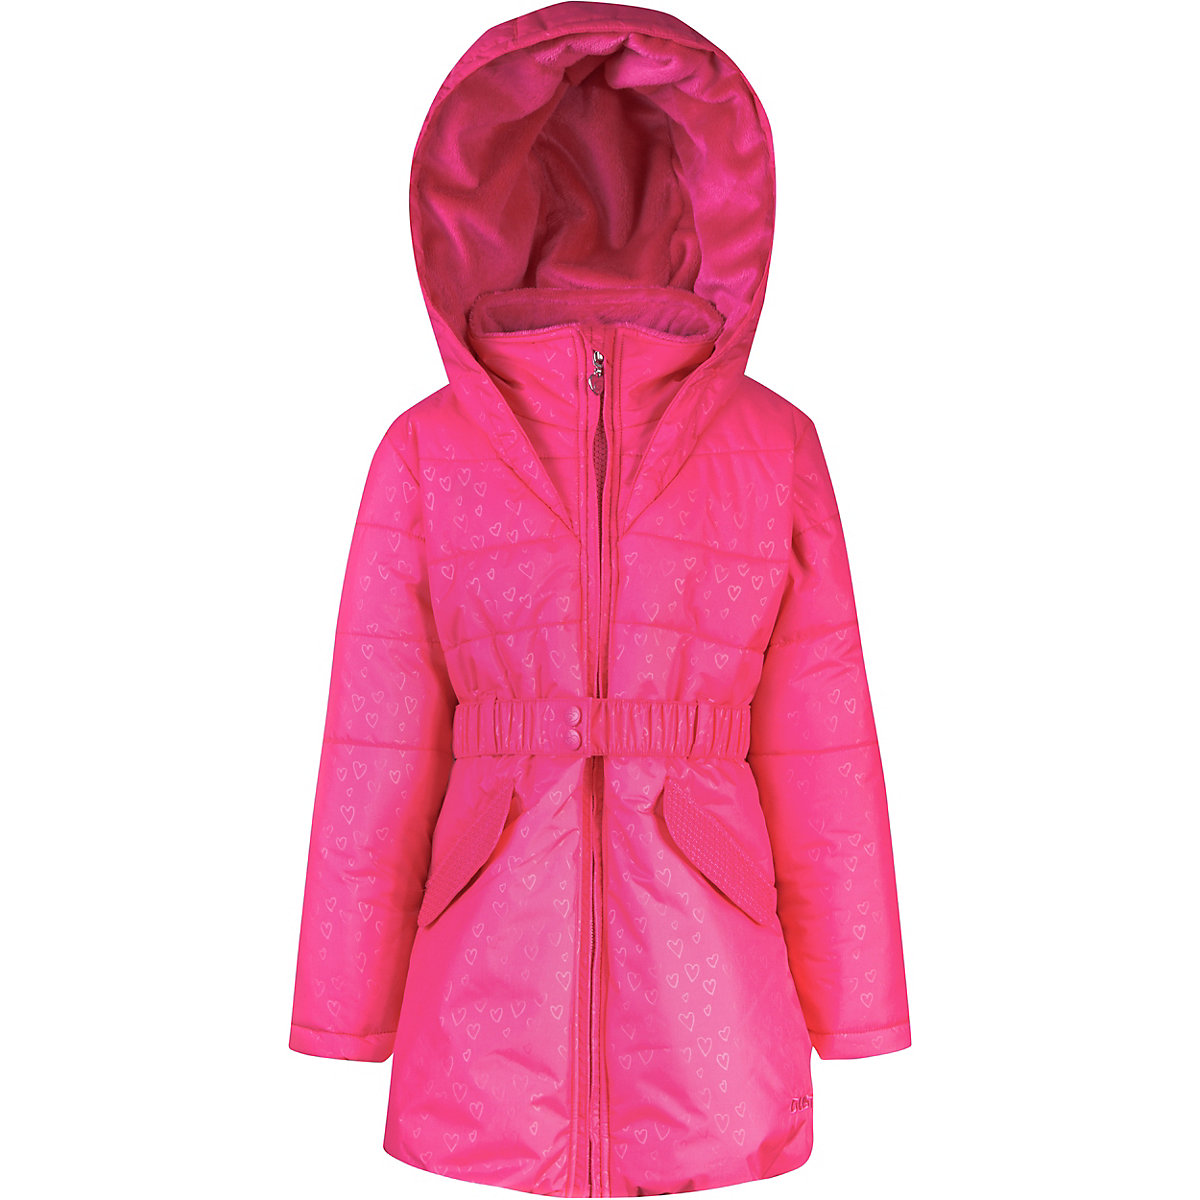 GUSTI Down & Parkas 9512064 jacket for girls winter outerwear children jackets boys clothing icebear 2018 new men s winter jacket warm detachable hat male short coat fashion casual apparel man brand clothing mwd18813d